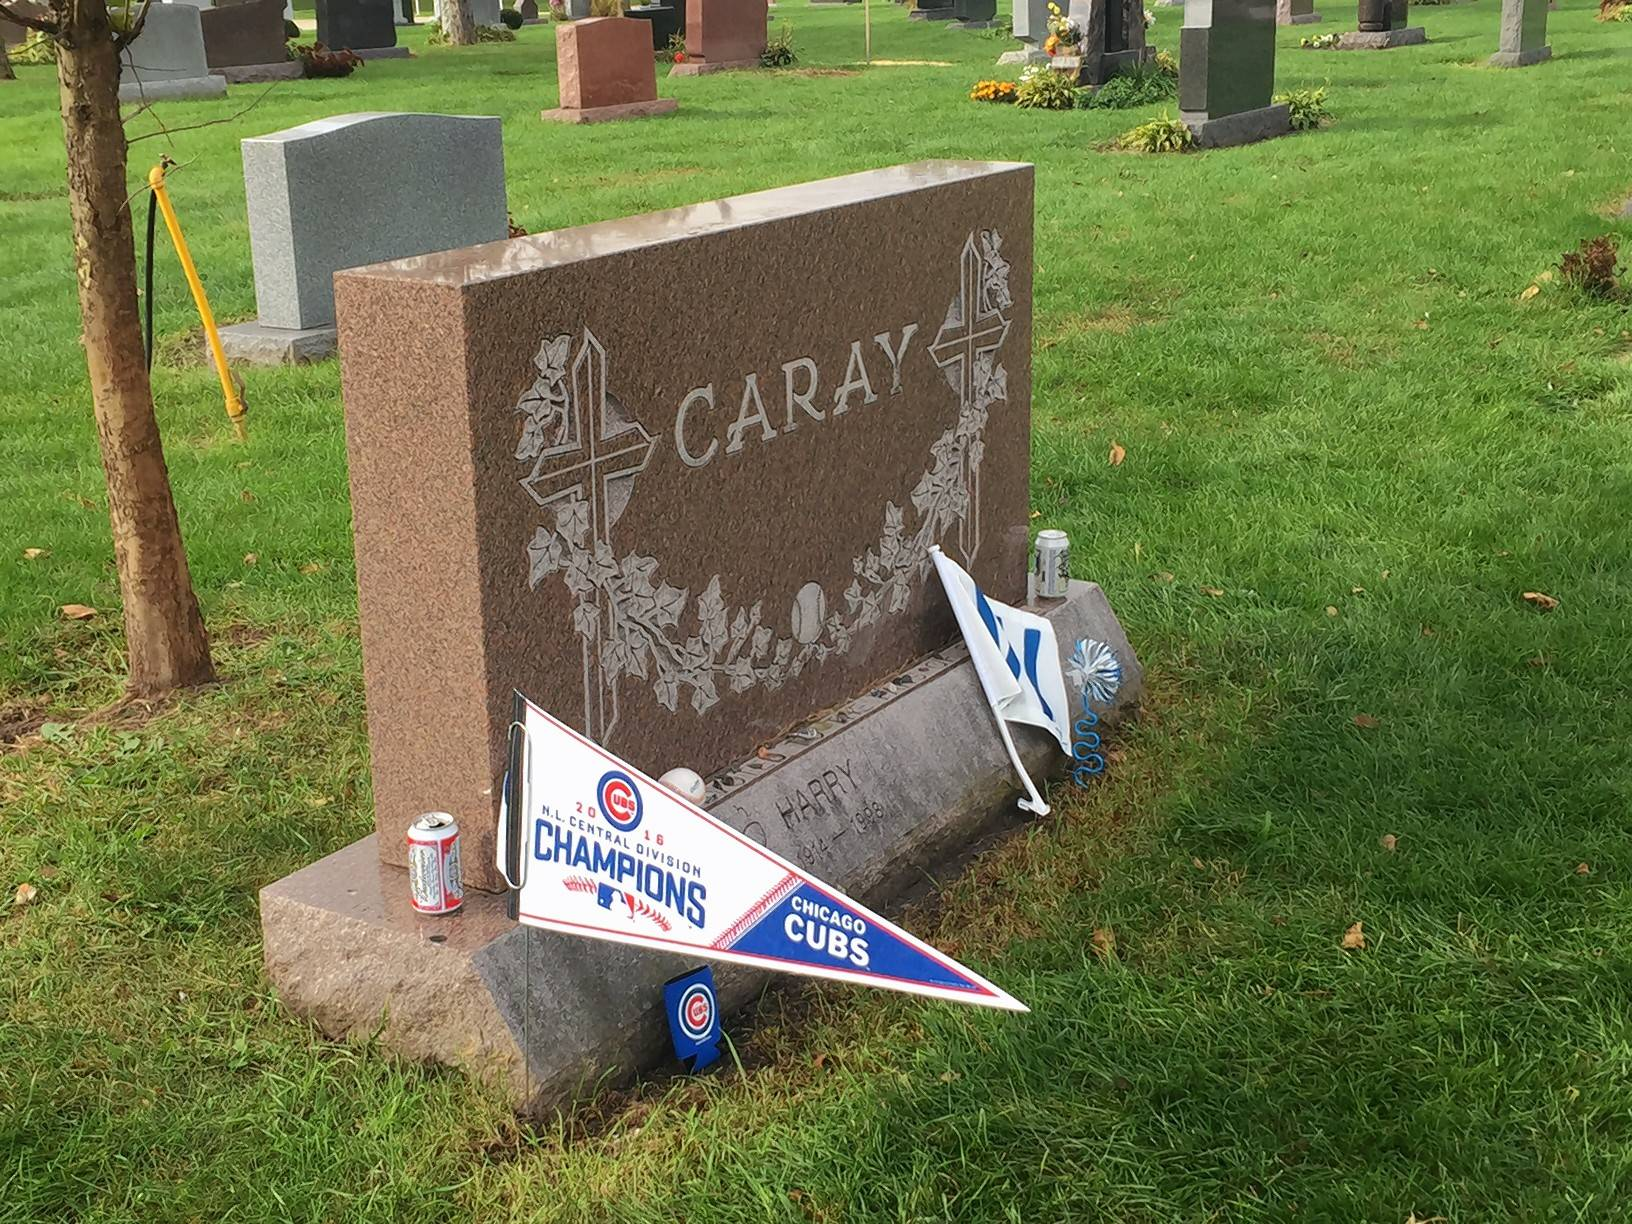 Fans toasting Cubs at Harry Caray's grave in Des Plaines